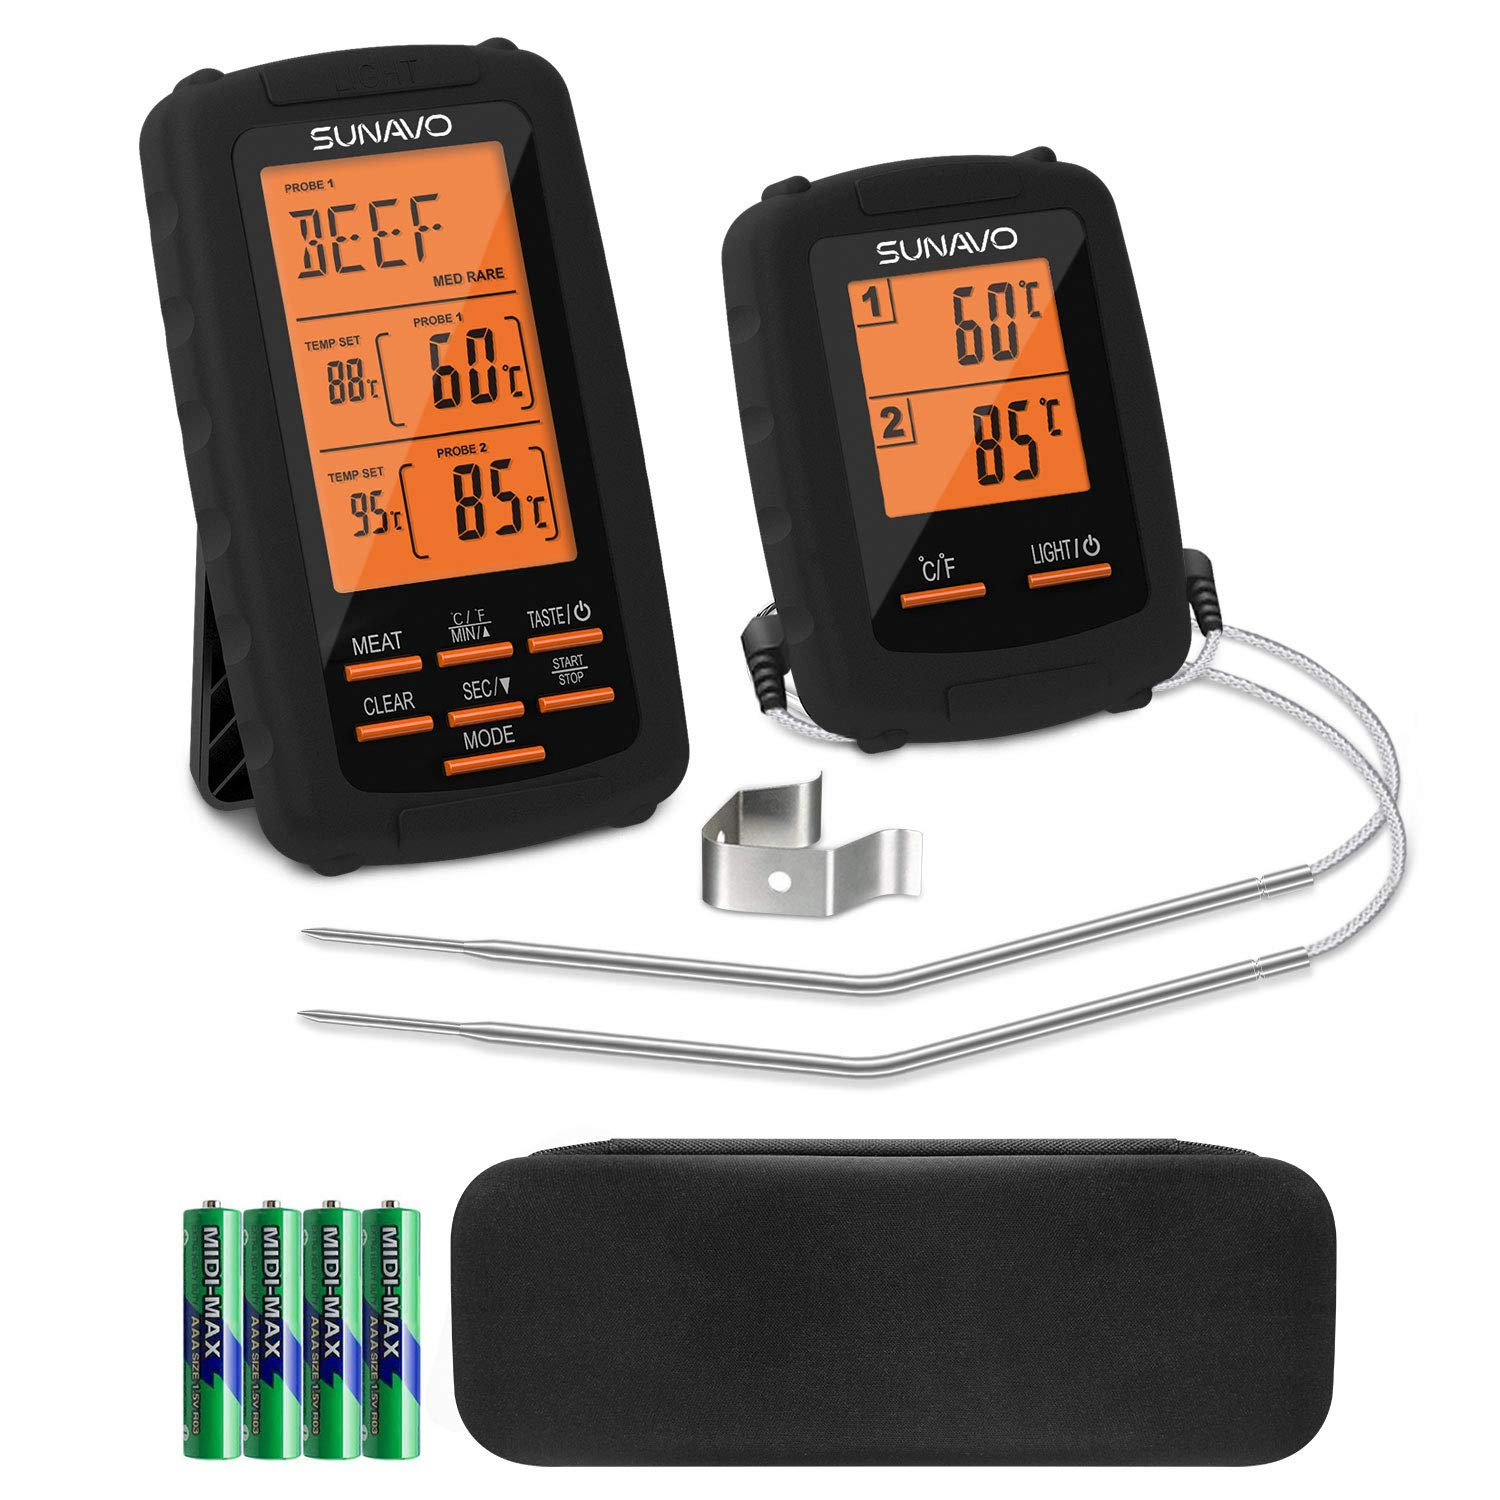 SUNAVO Meat Thermometer for Grilling Wireless BBQ Thermometer Digital Smoker Dual Temperature Probe by sunavo